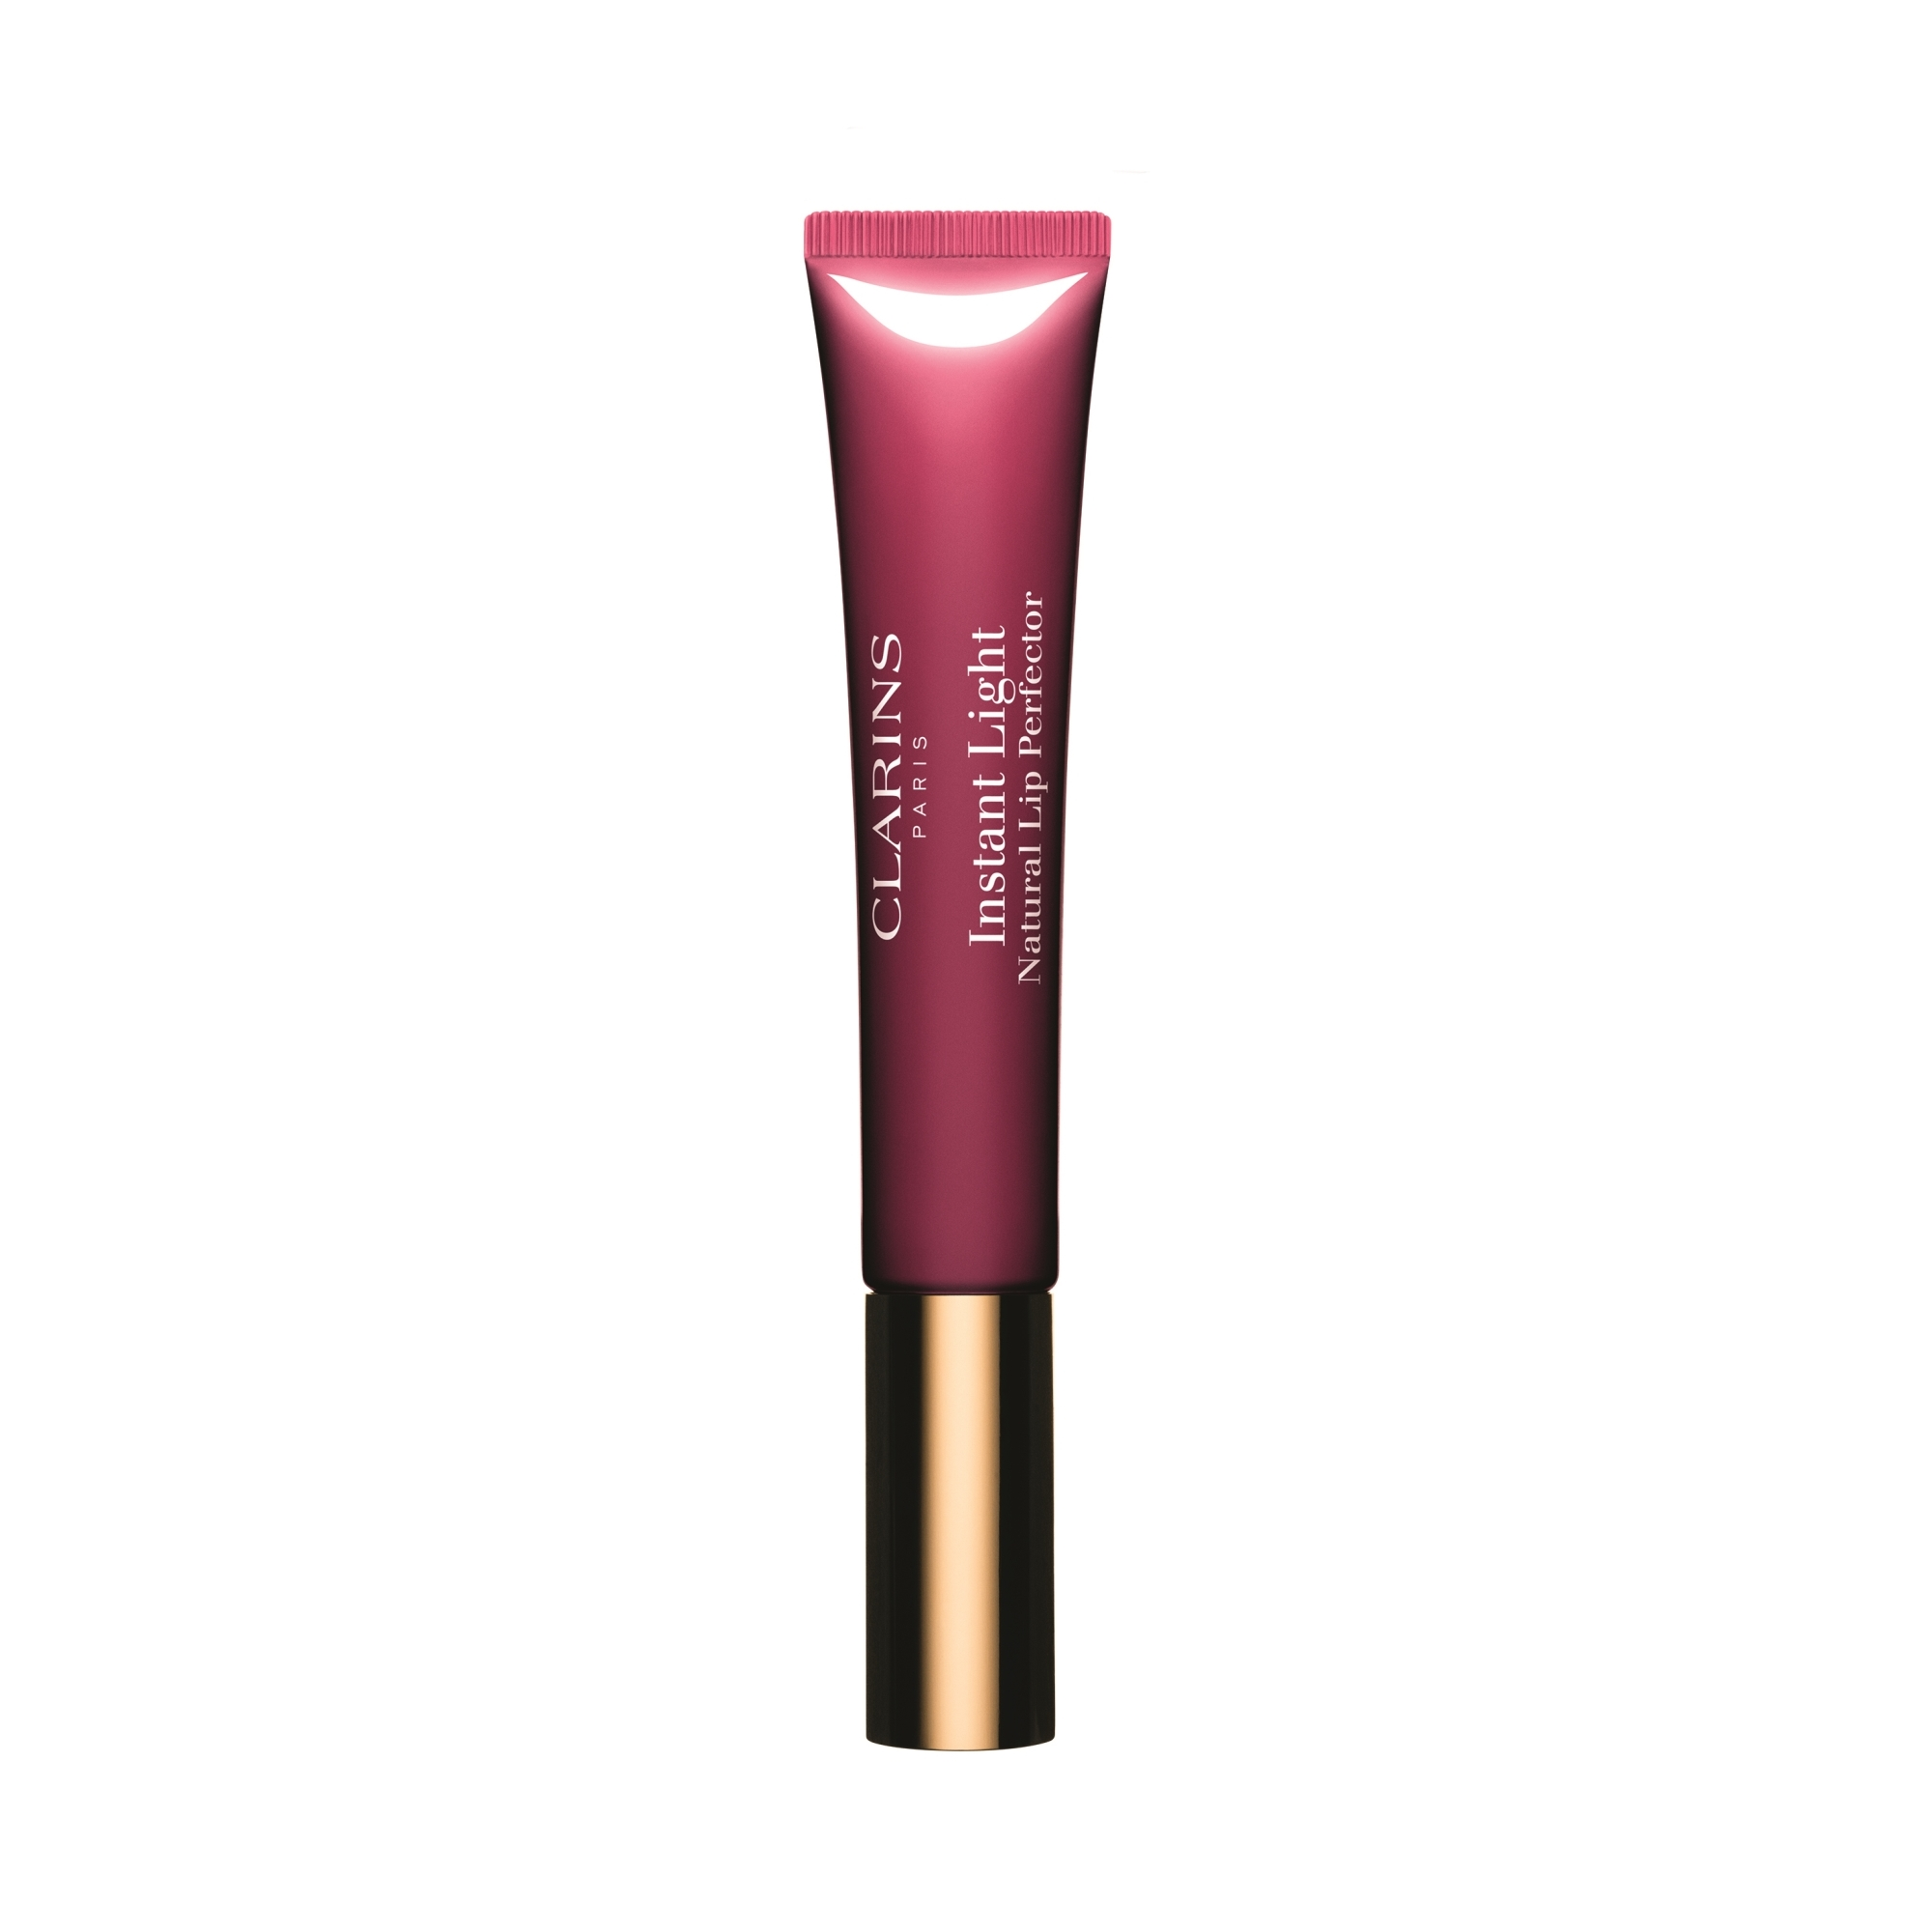 Instant Light Natural Lip Perfector 08 Plum